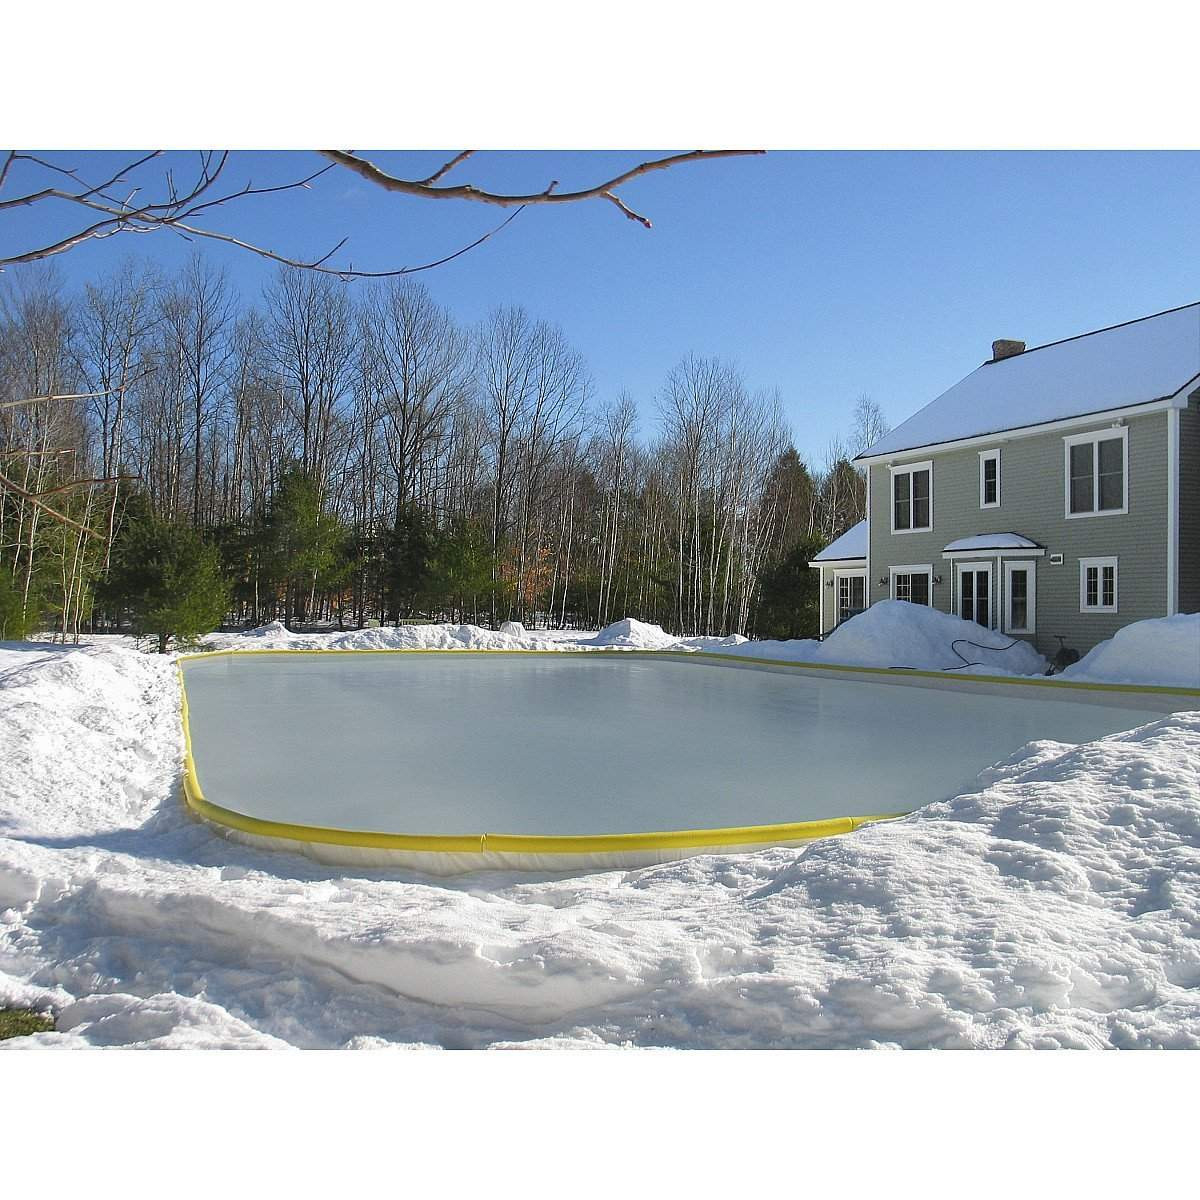 Best ideas about Backyard Ice Rink . Save or Pin Top 20 Best Cool Christmas Gift Ideas for Kids Now.